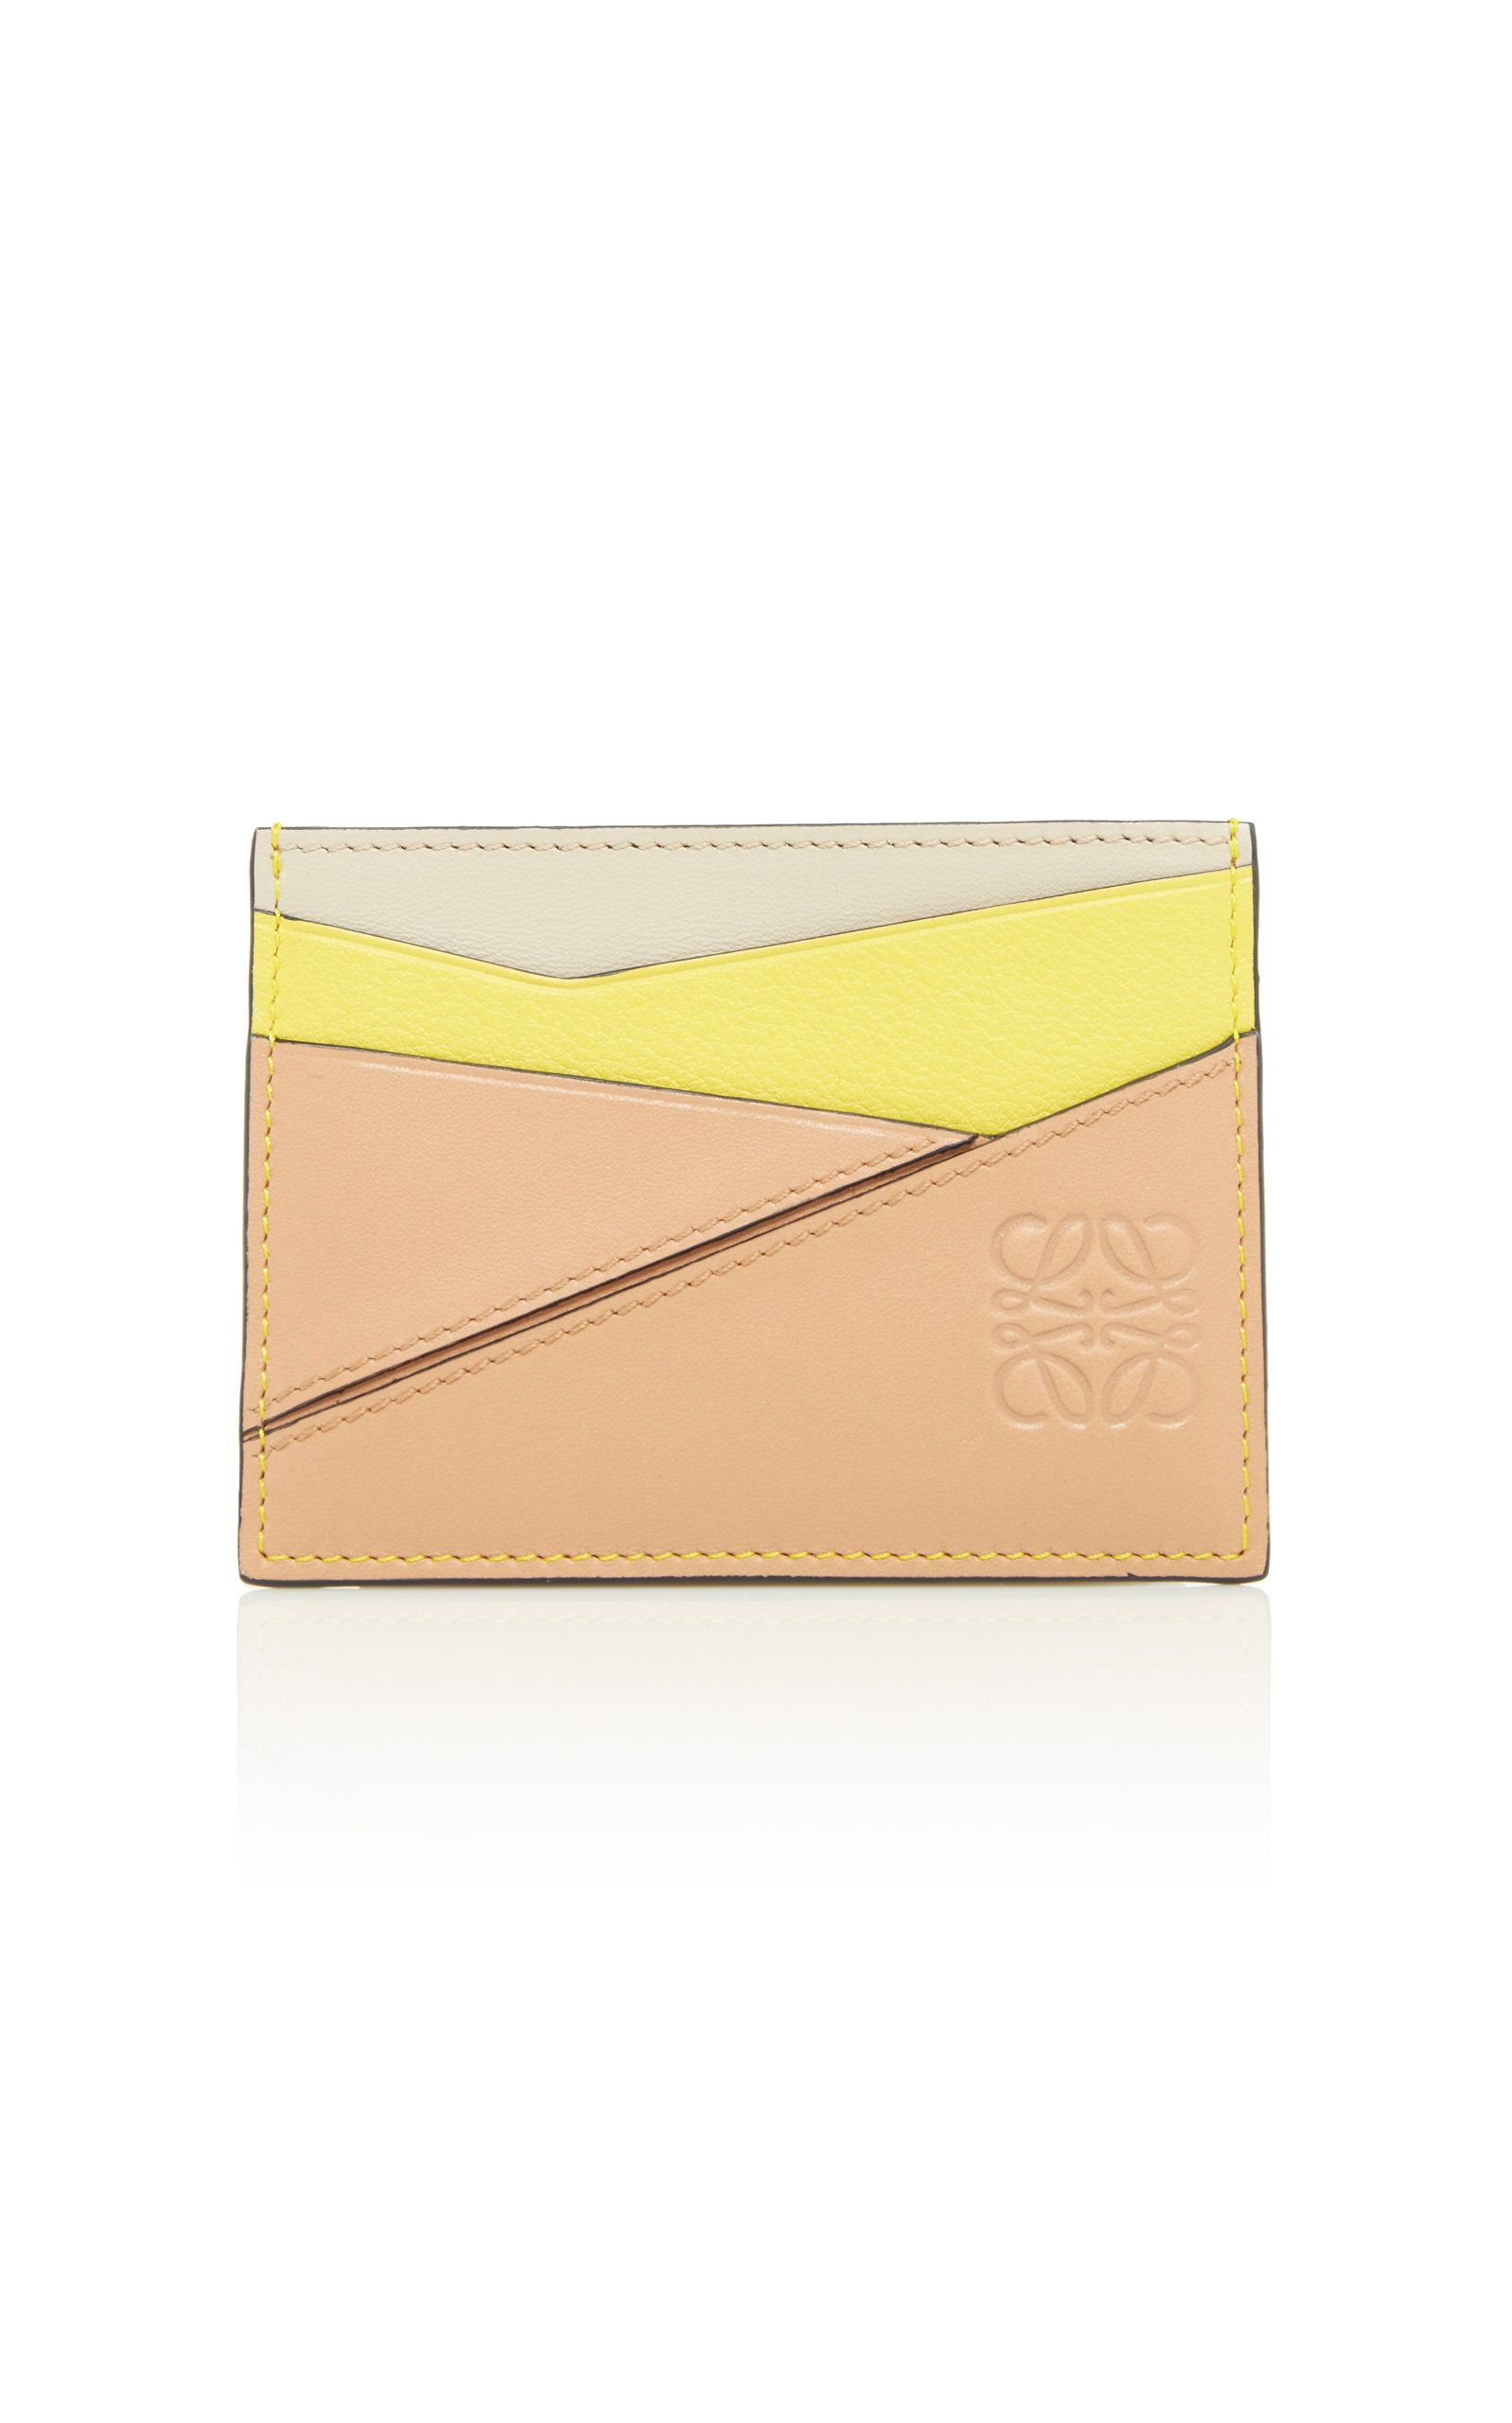 110961acf887 LOEWE   Puzzle Leather Card Holder - Yellow   CAD 340   Loewe's leather  'Puzzle